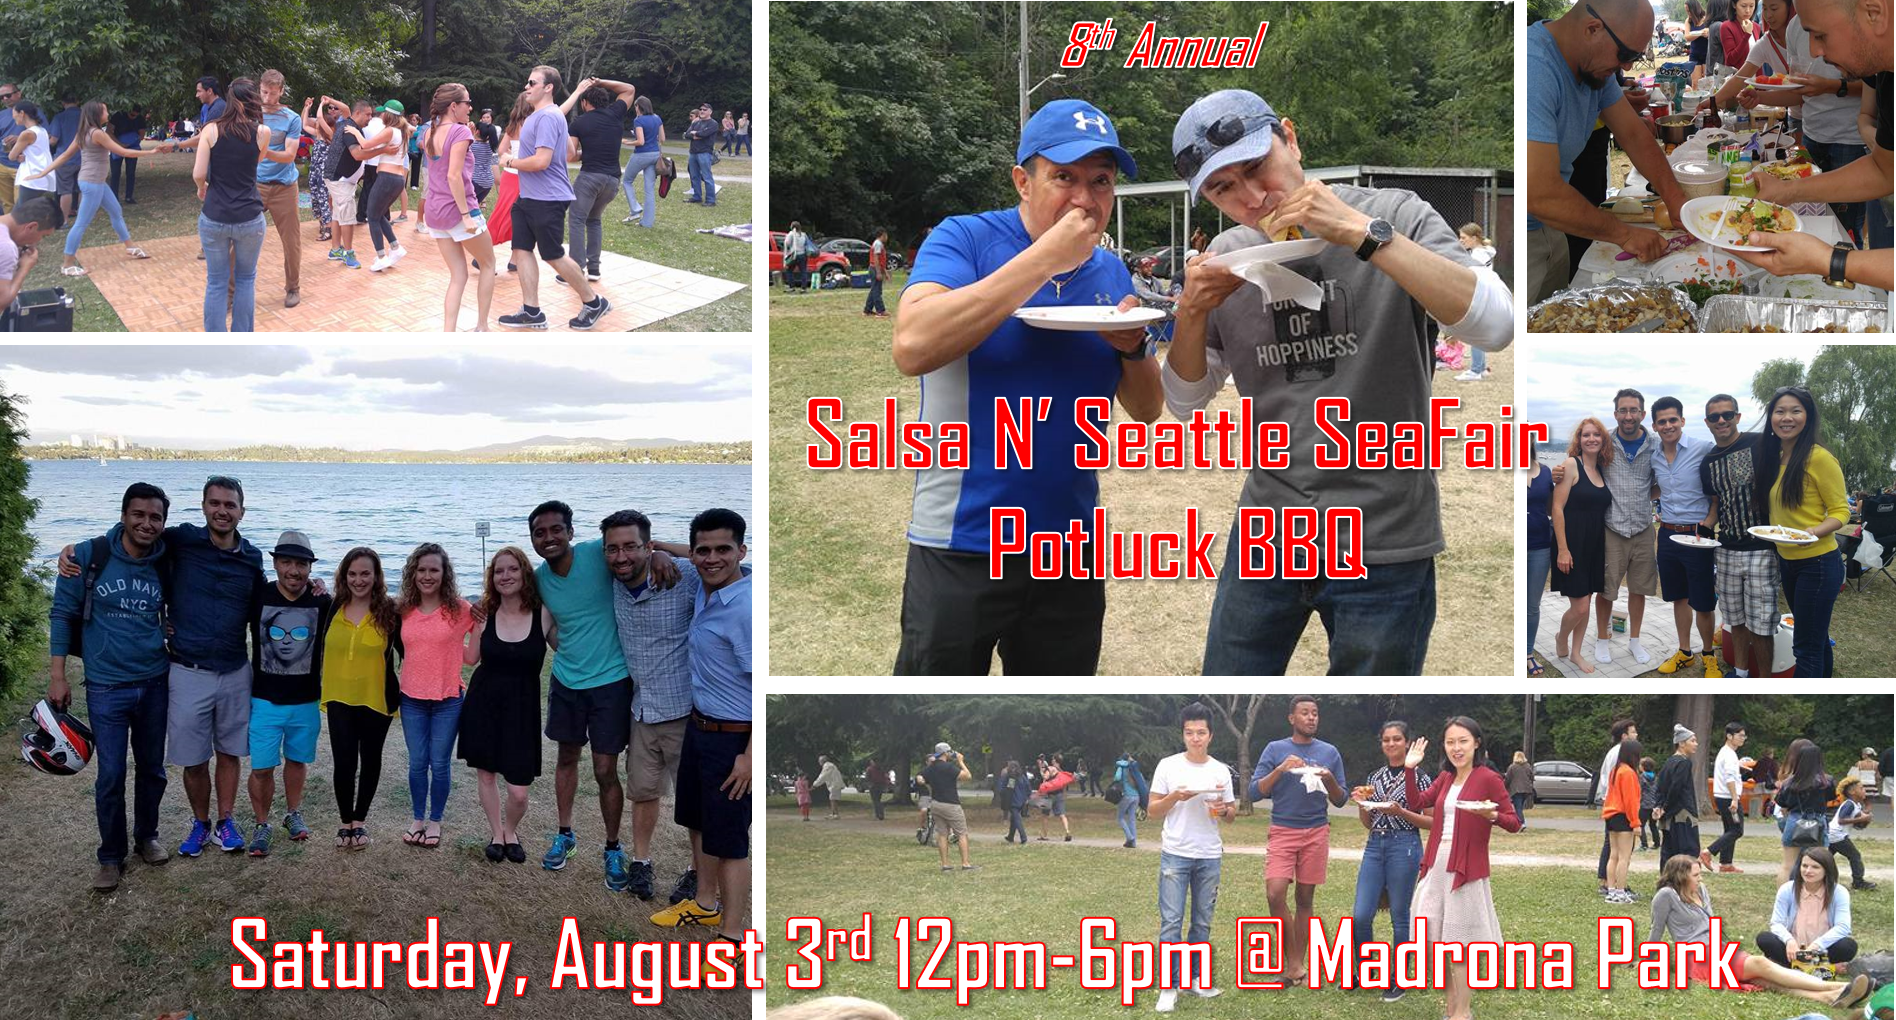 8th Annual Salsa N' Seattle SeaFair Potluck BBQ